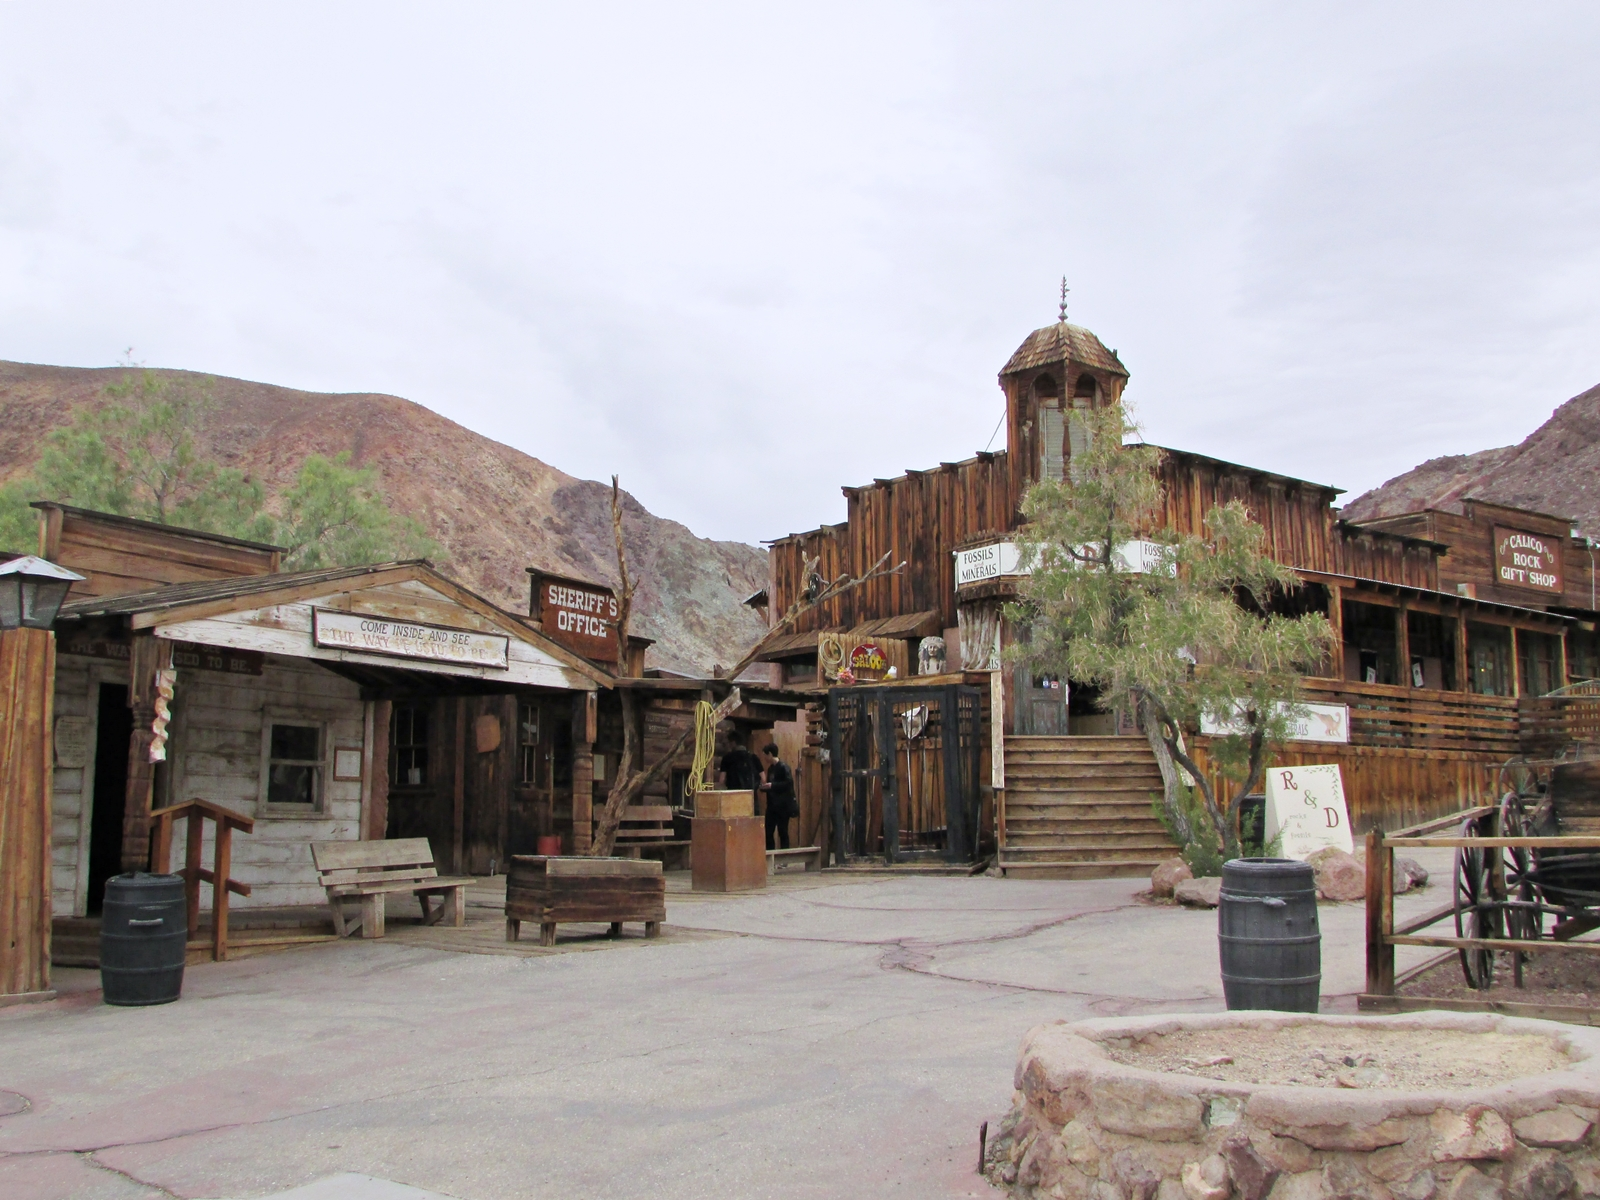 Calico Ghost town - usa rundreise - geisterstadt in der Mojave Wüste - Scheriff´s Office - Roadtrip - Fashionladyloves by Tamara Wagner Travelblog